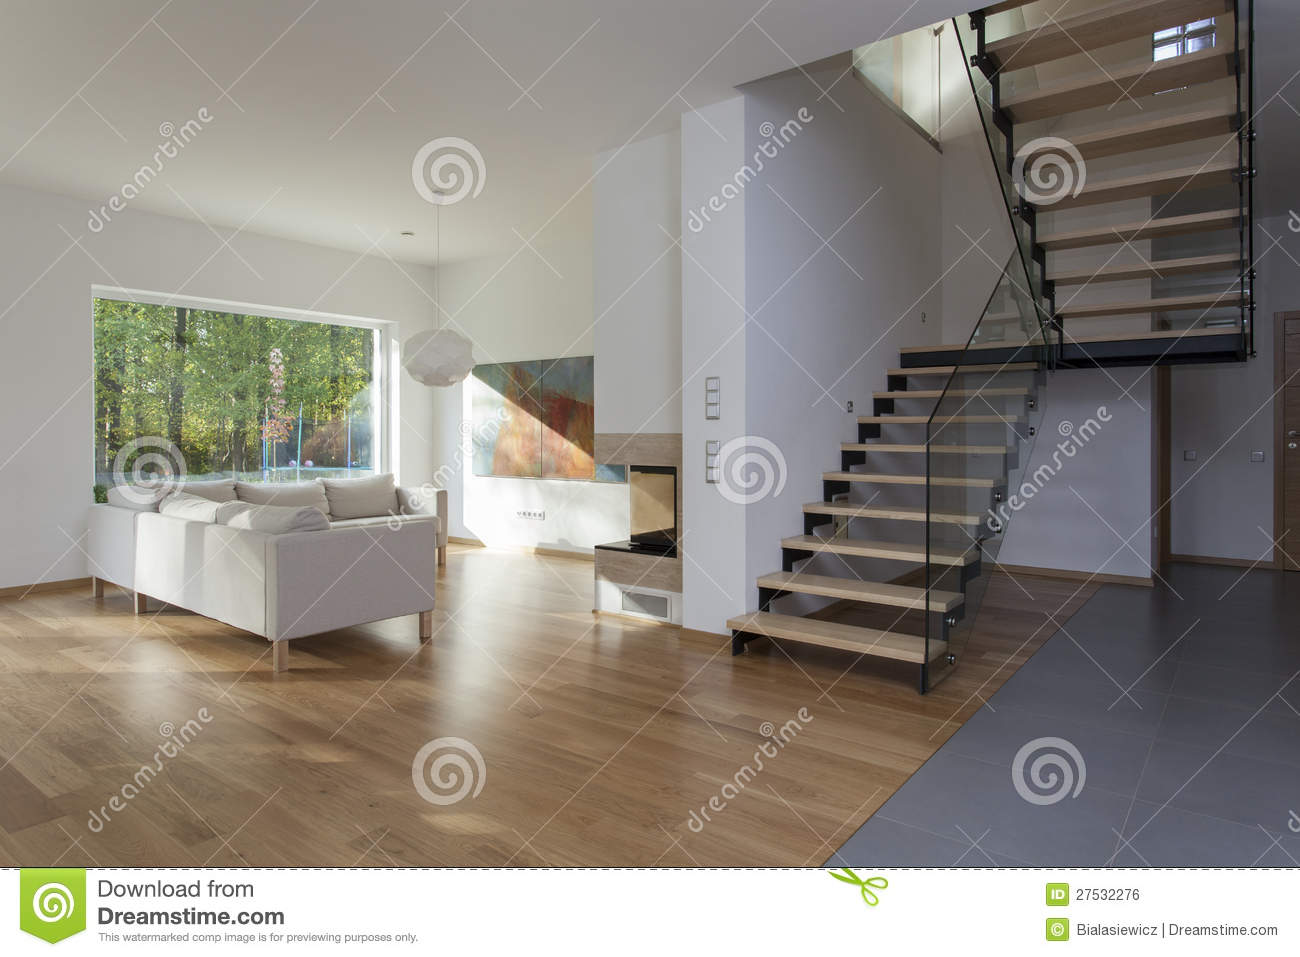 Living Room Stairs Royalty Free Stock Image Image - Living room with stairs